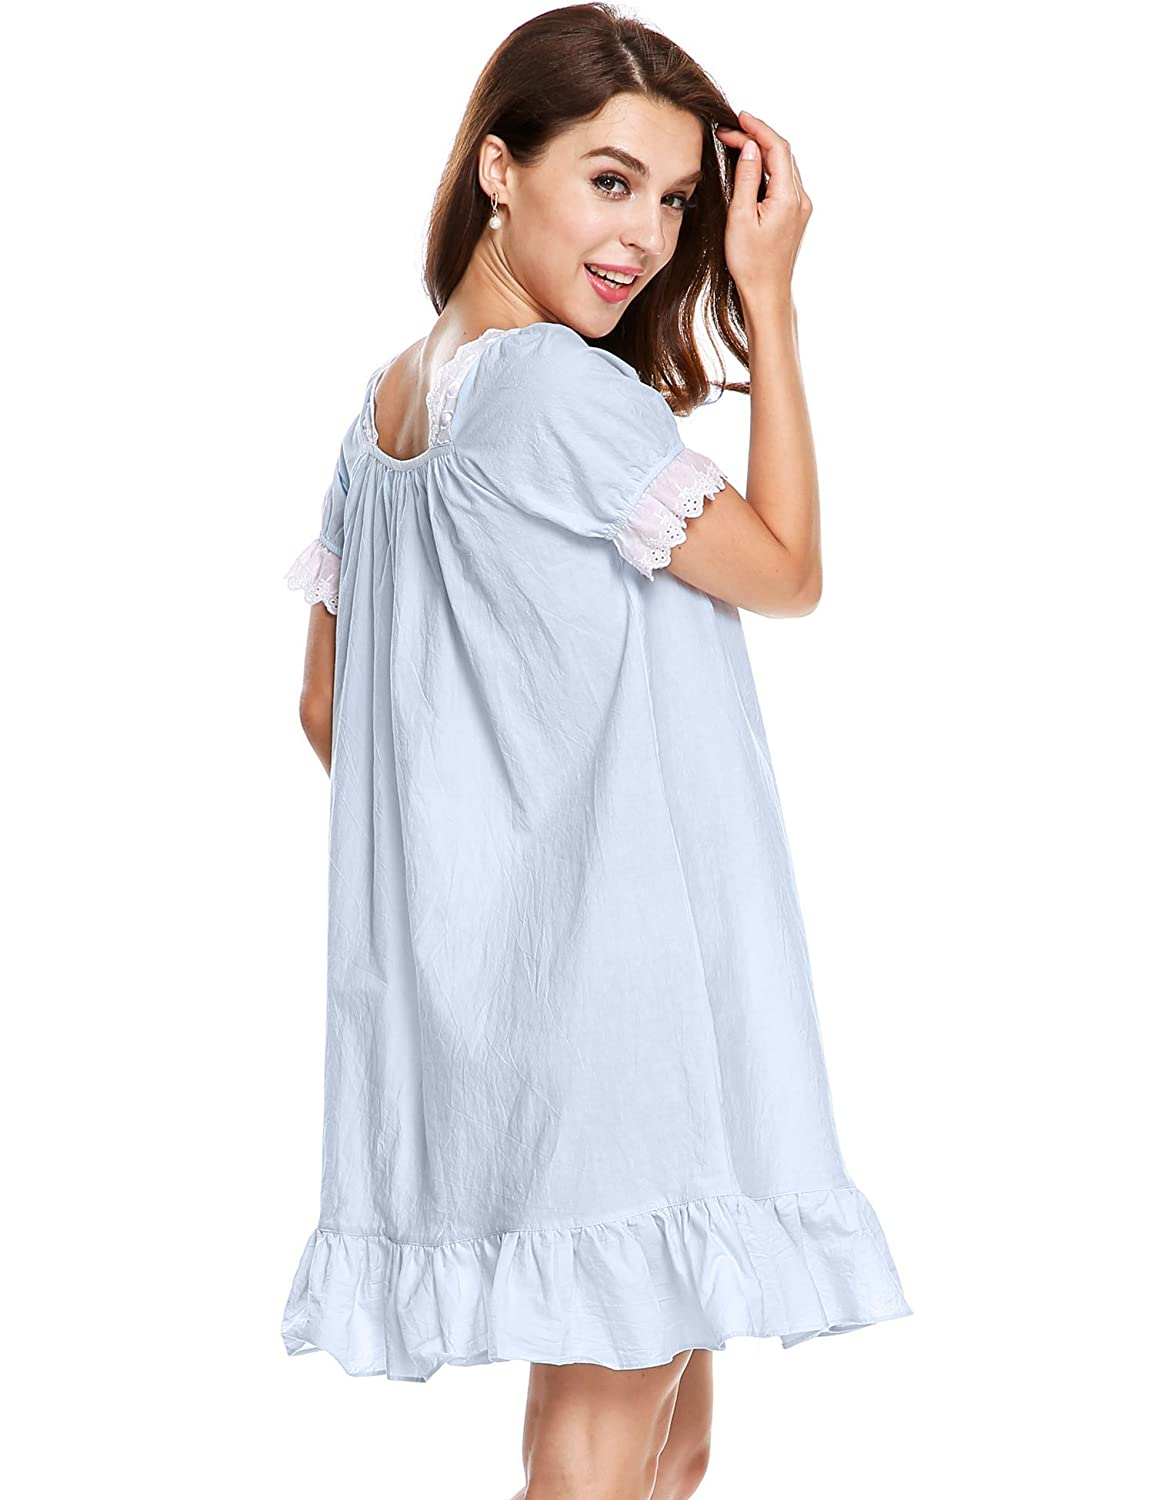 Avidlove Womens Cotton Victorian Nightgown Martha Sleep Shirt Dress *ALK004996